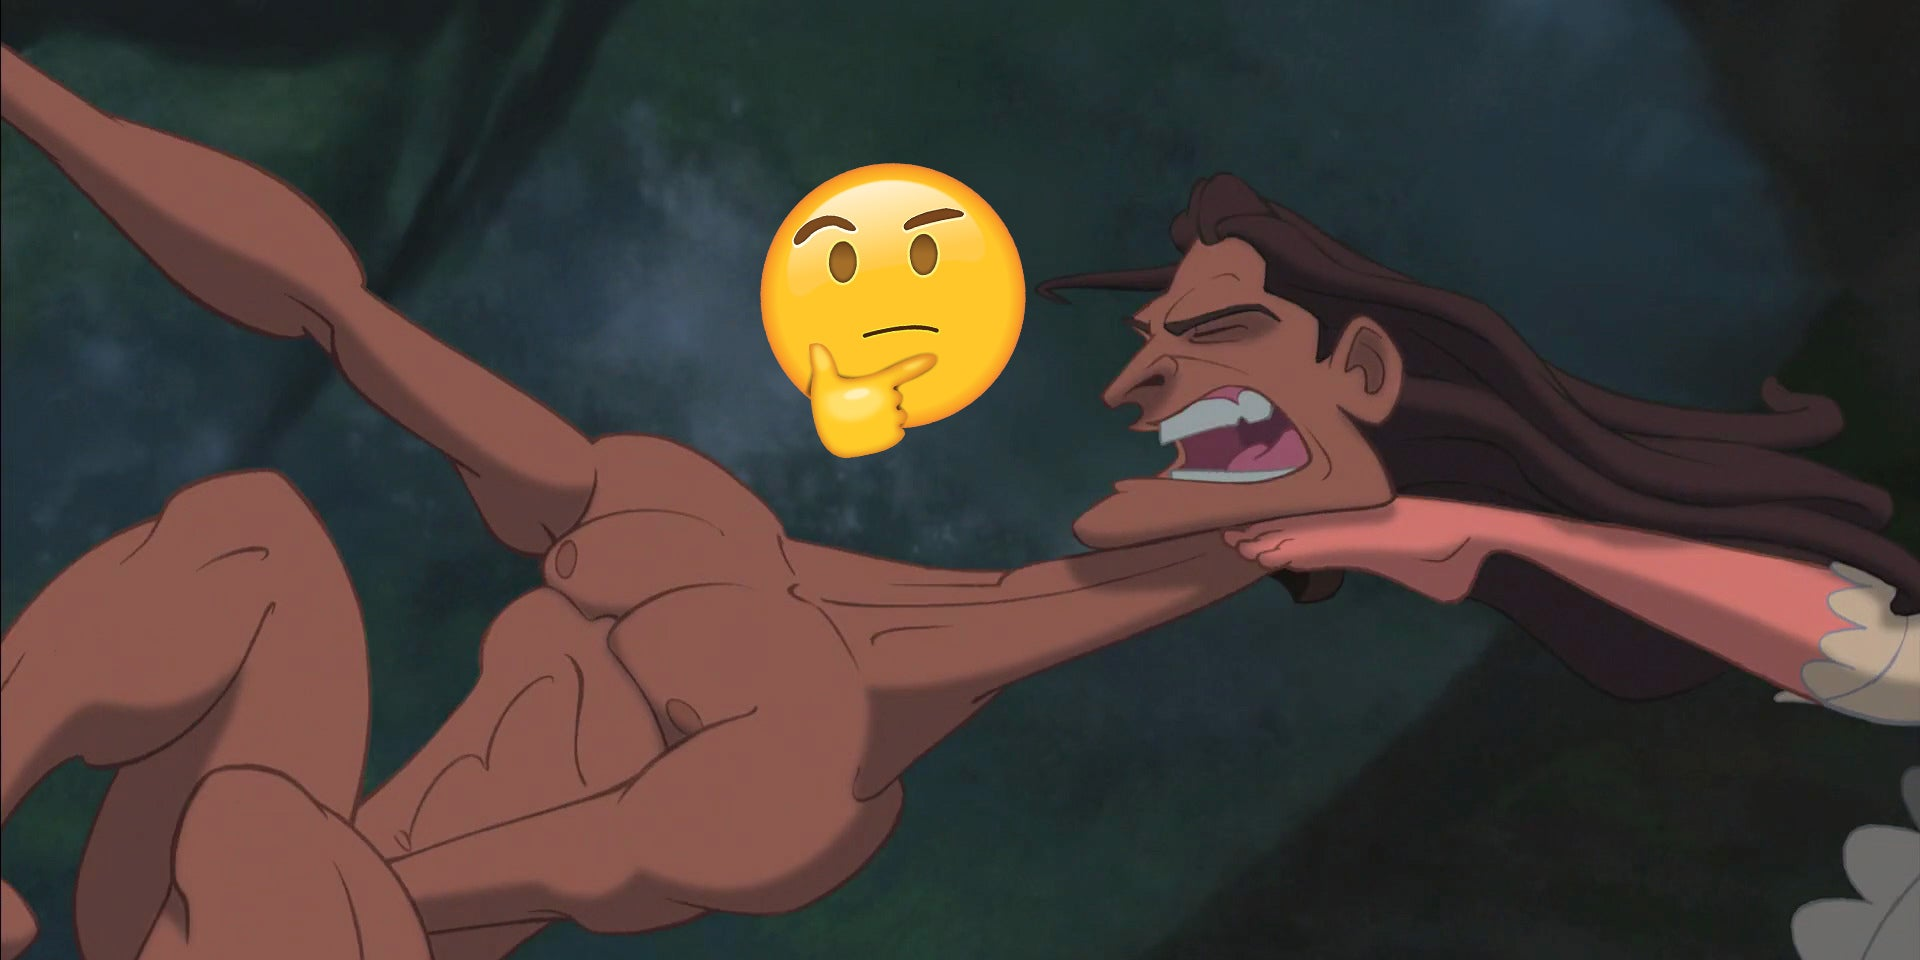 19 disney movies paused at just the right moment